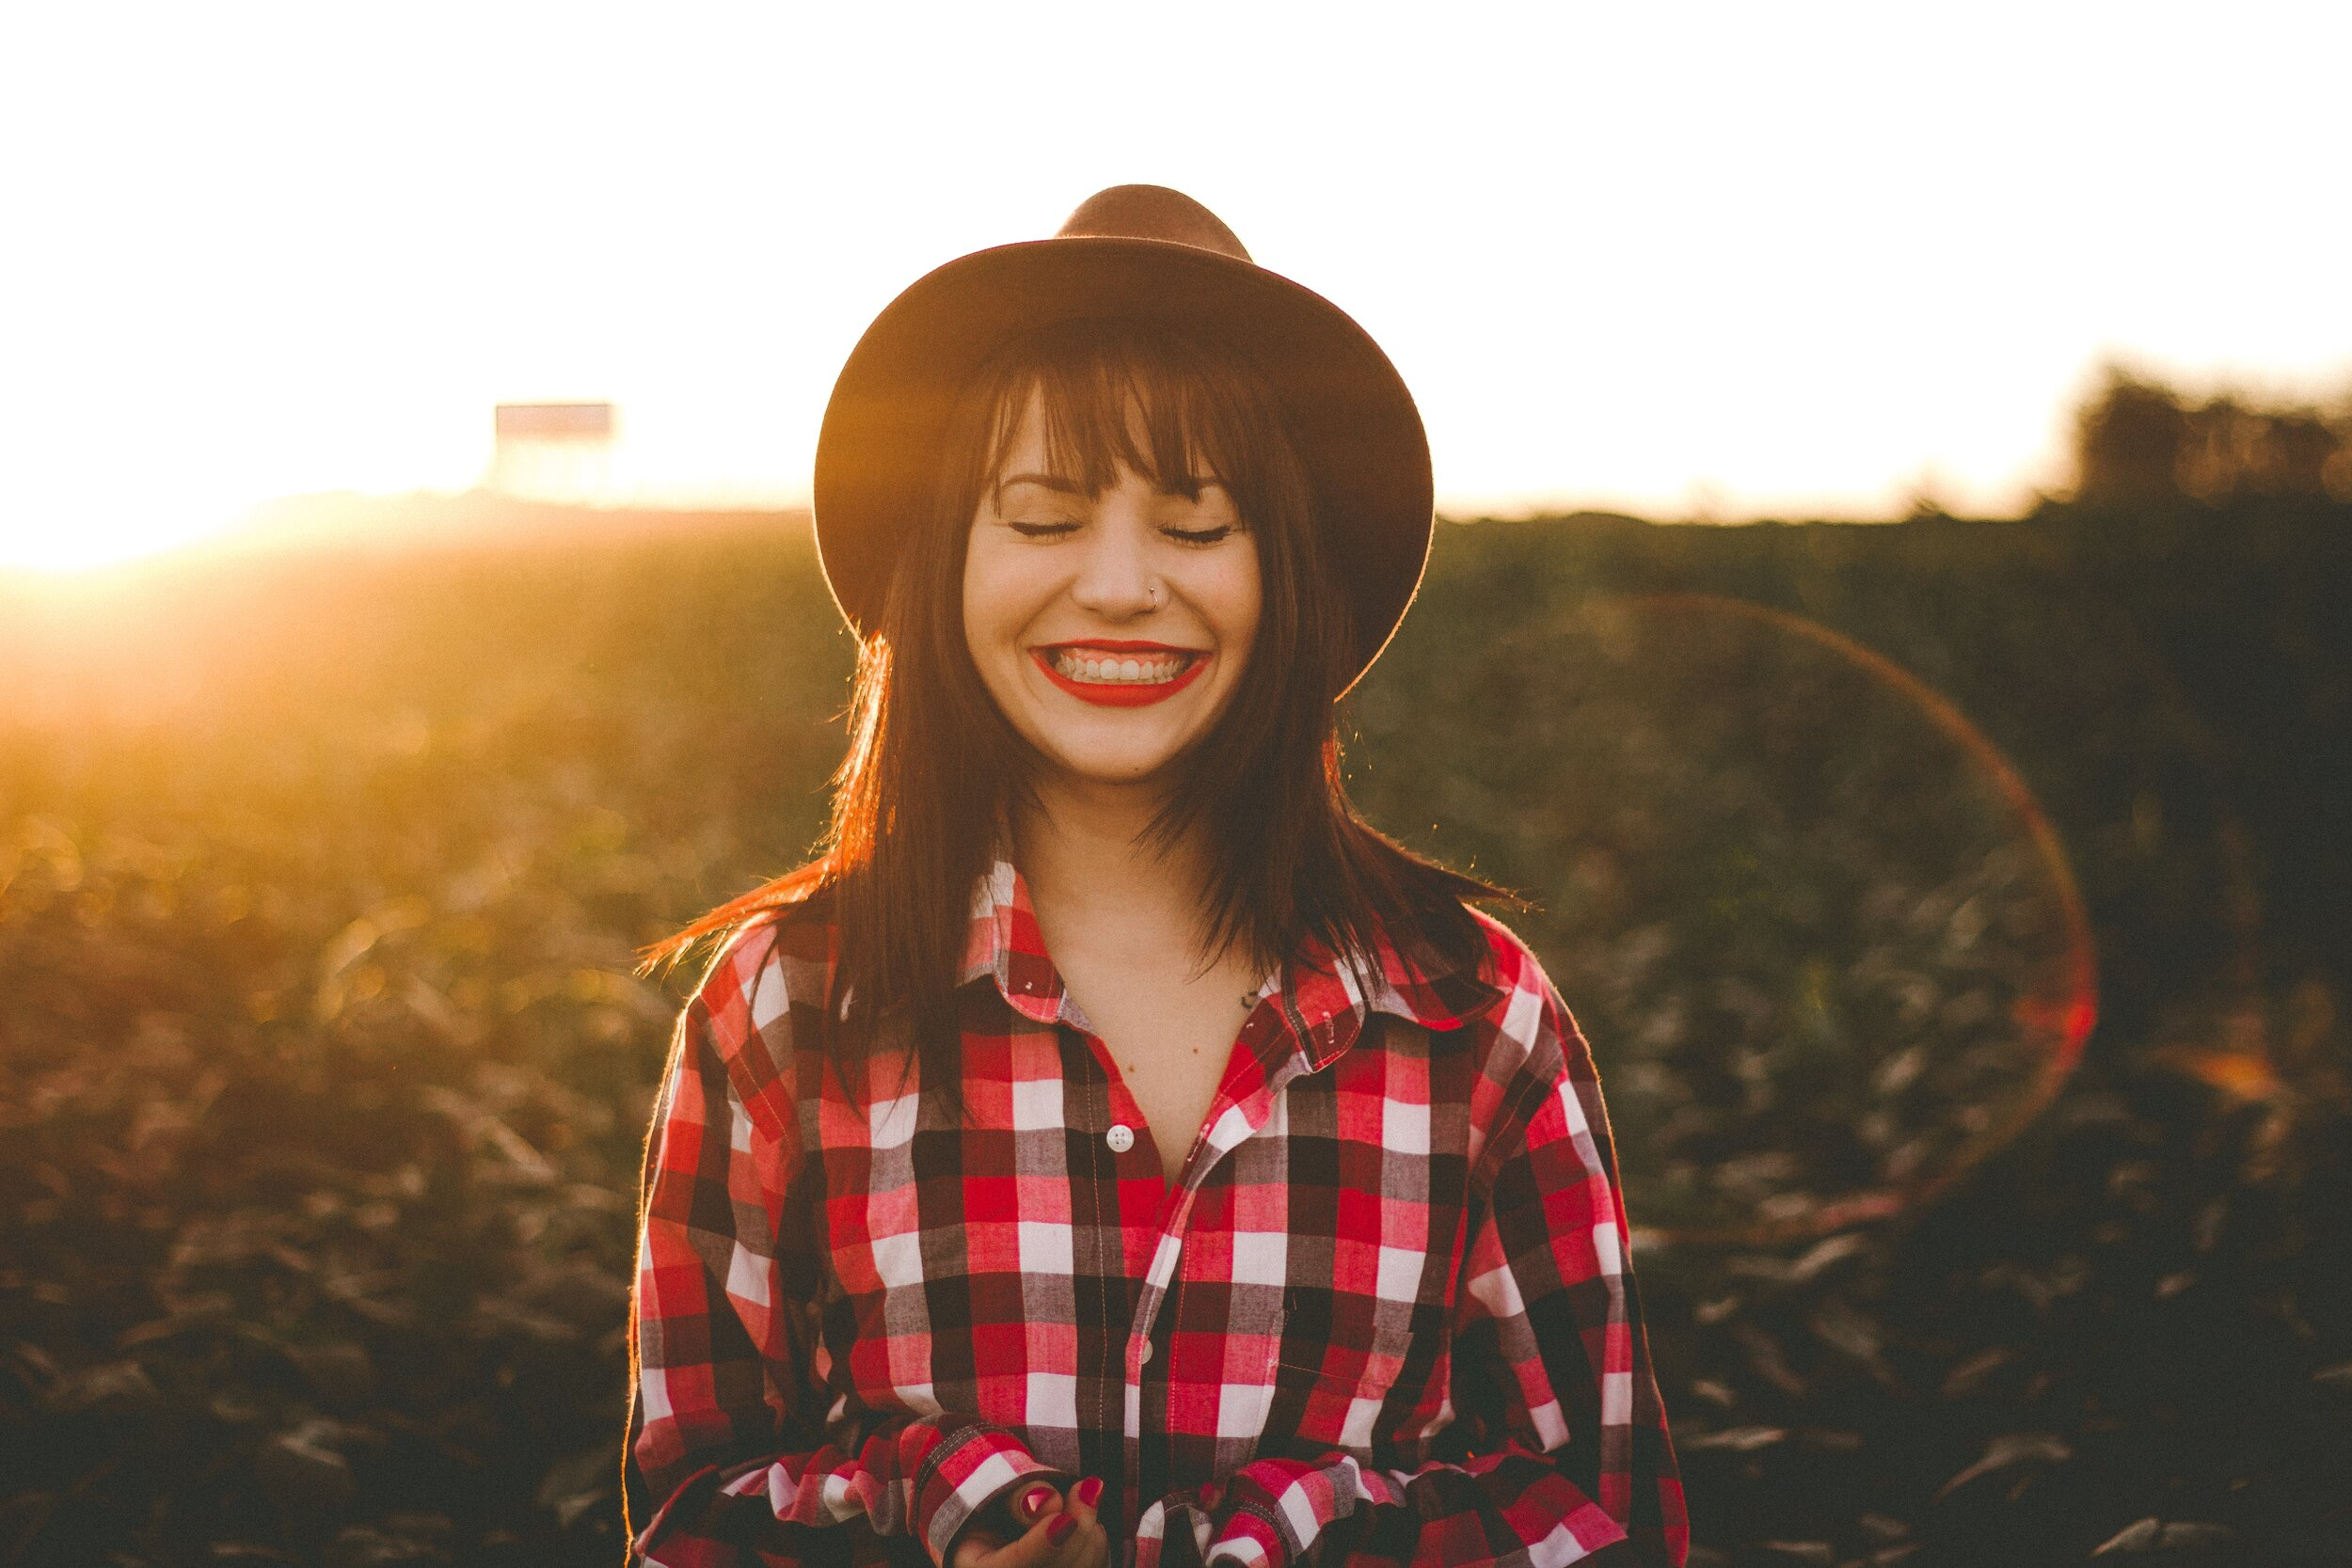 young woman smiling in field allef-vinicius-180699-unsplash.jpg